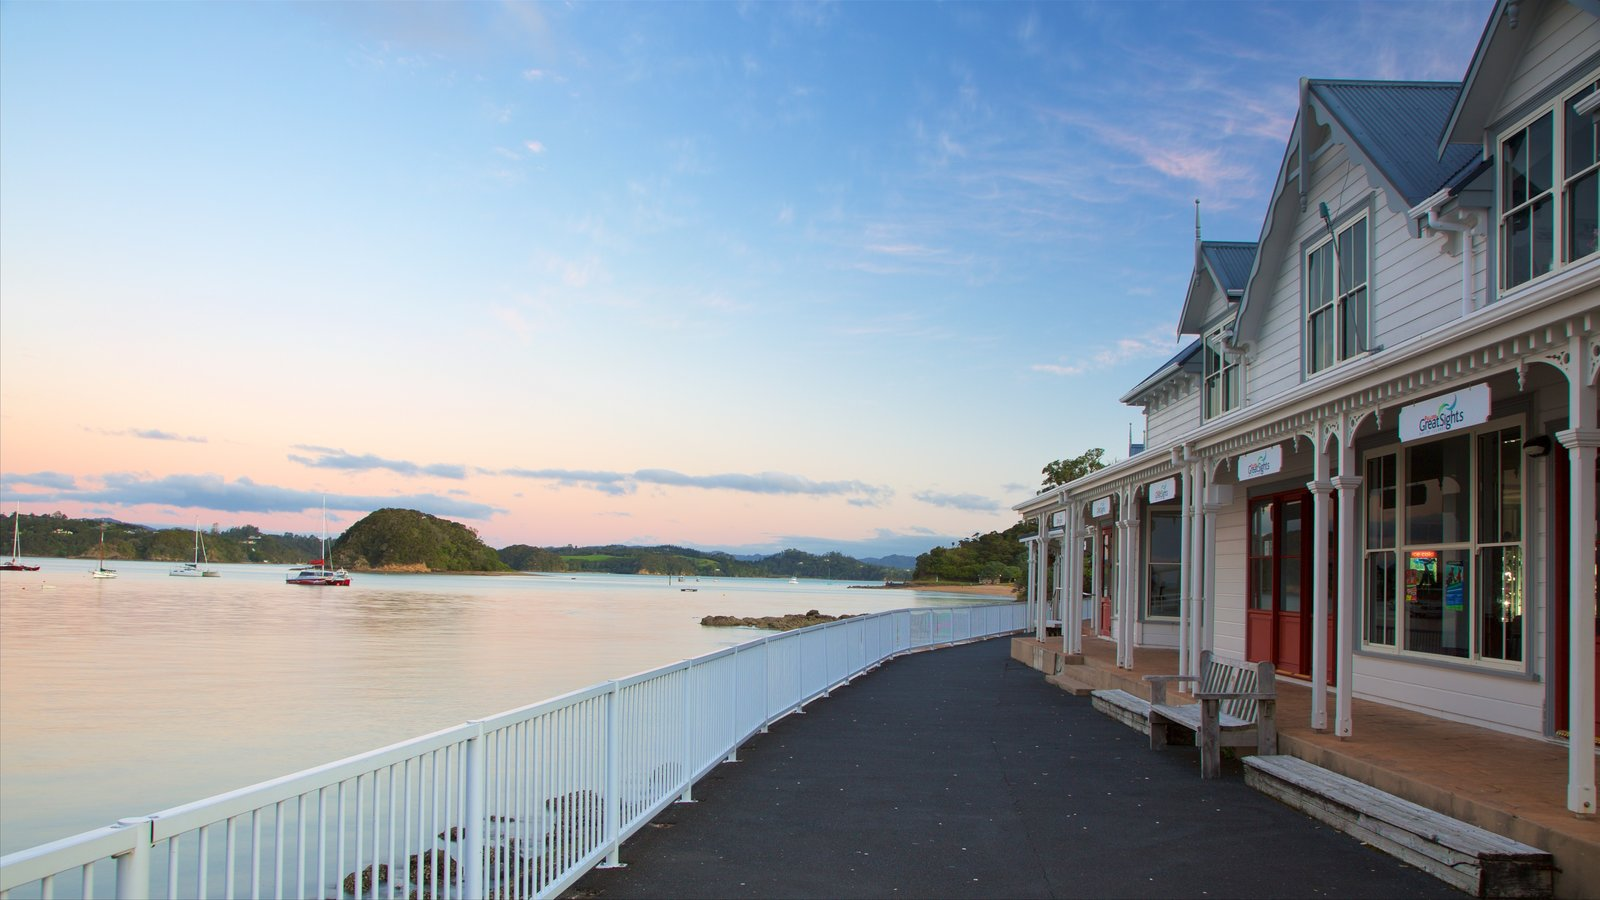 Paihia Wharf which includes a coastal town, a bay or harbor and a sunset